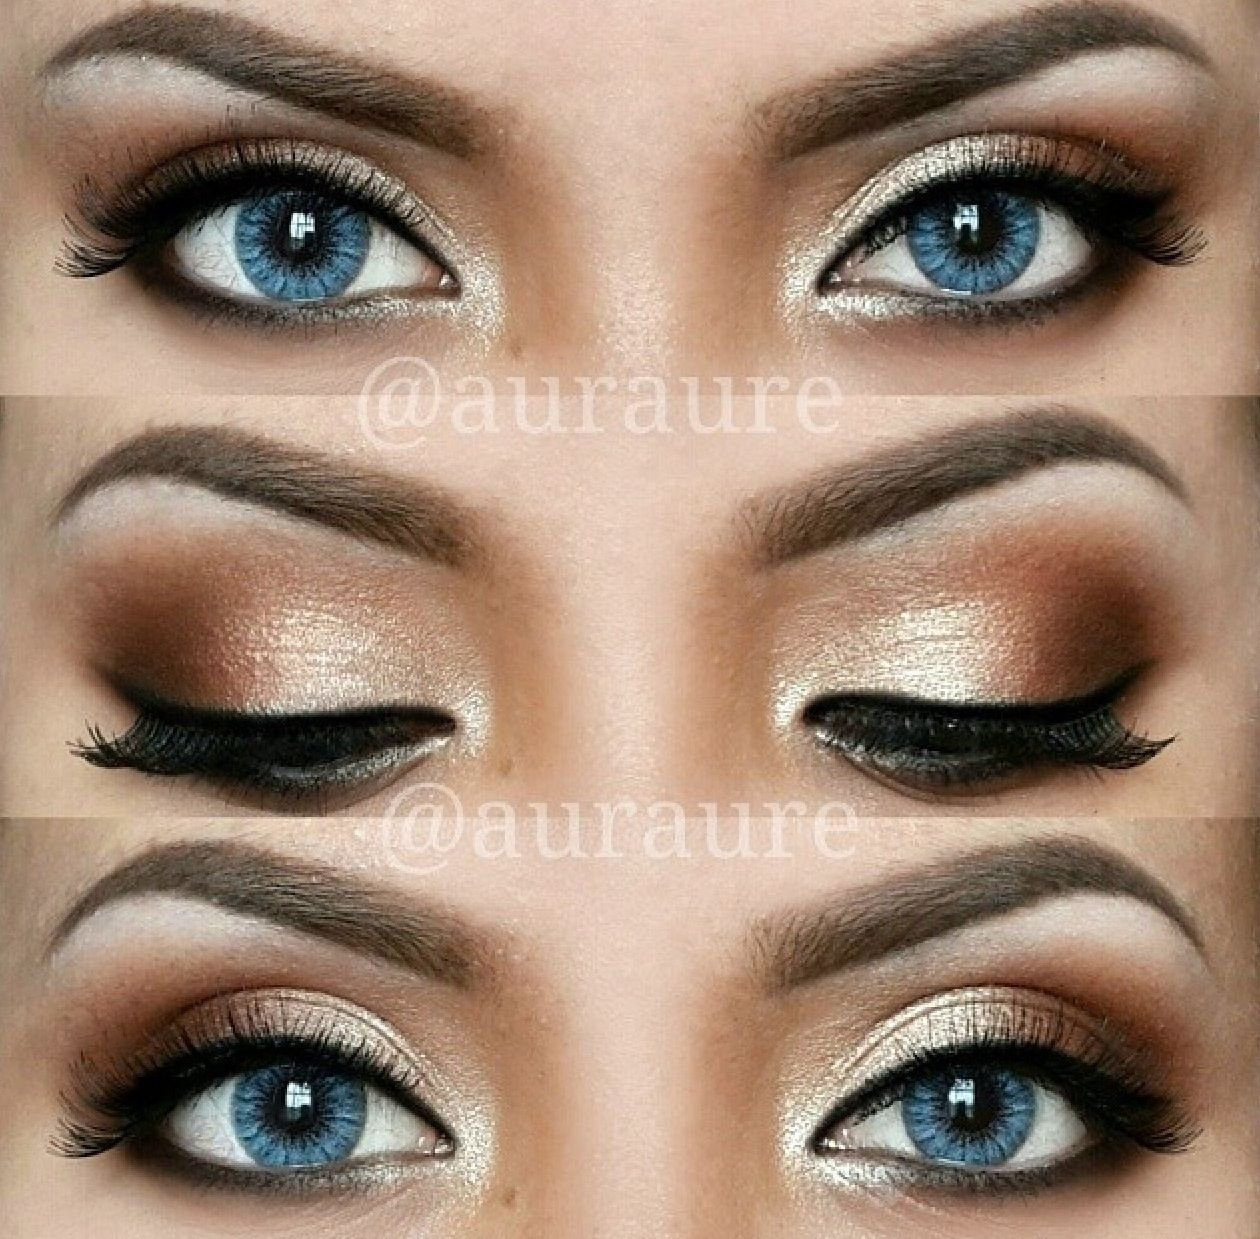 12 Easy Ideas For Prom Makeup For Blue Eyes   Hair And Makeup within How To Do Dramatic Eye Makeup For Blue Eyes